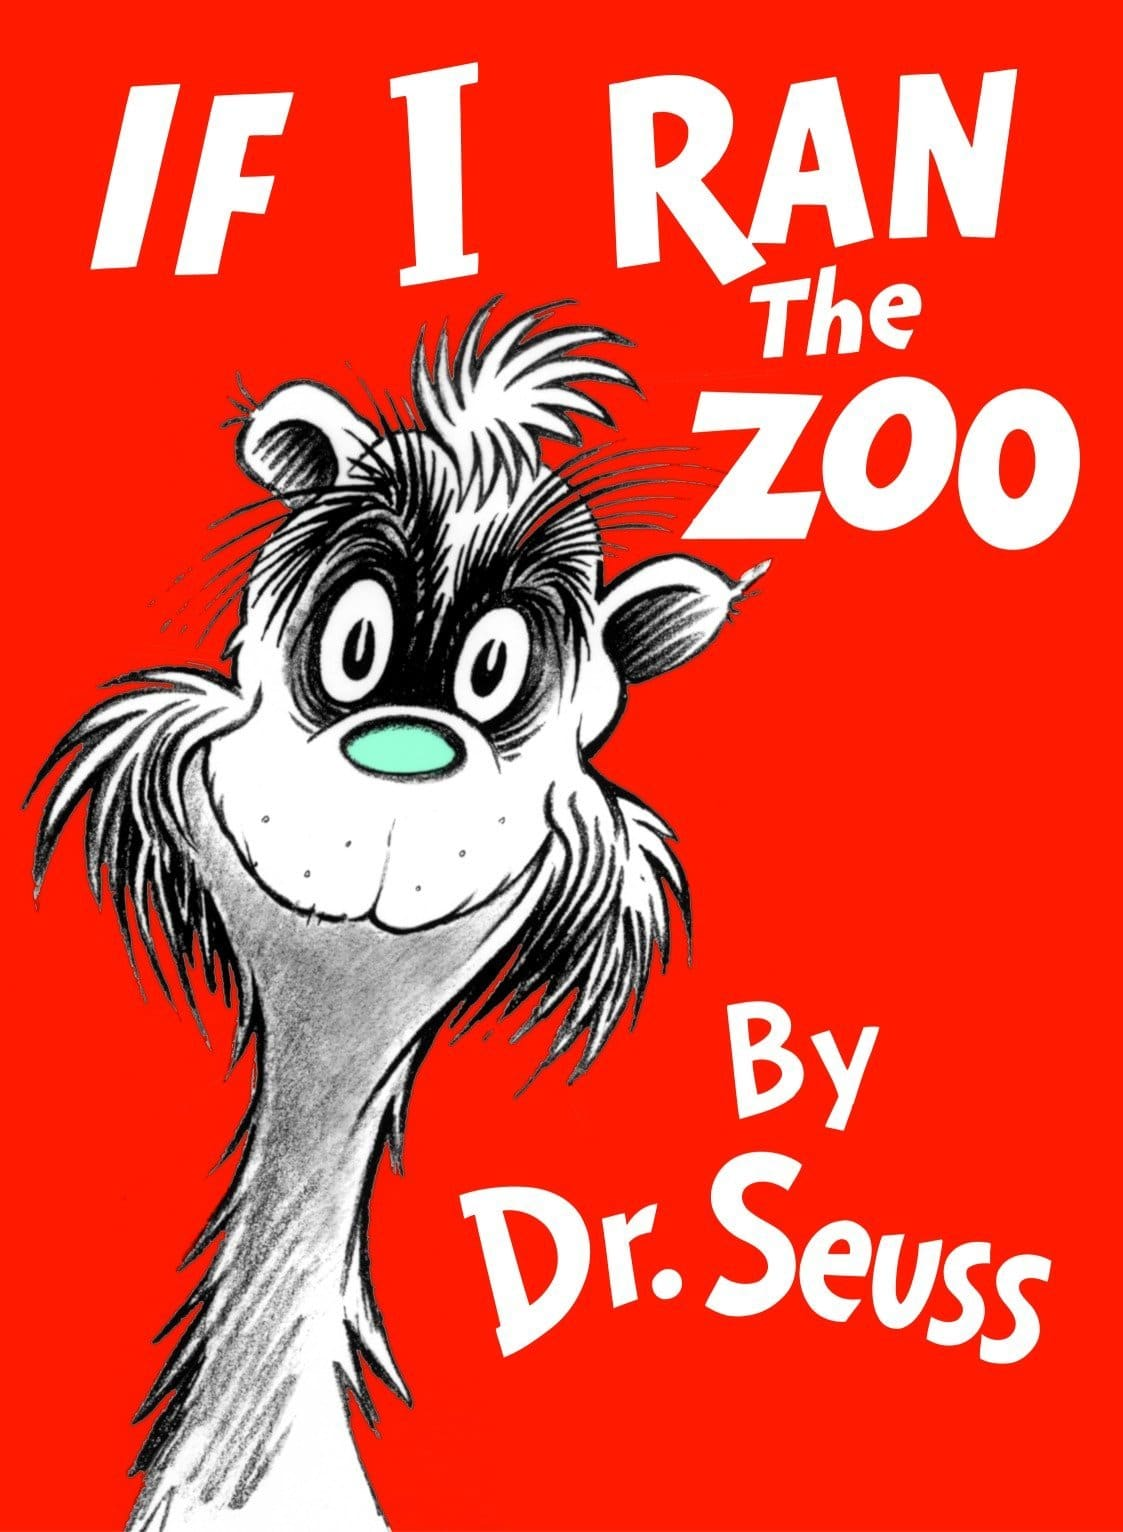 6 Dr. Seuss books will no longer be published because of racist imagery 15